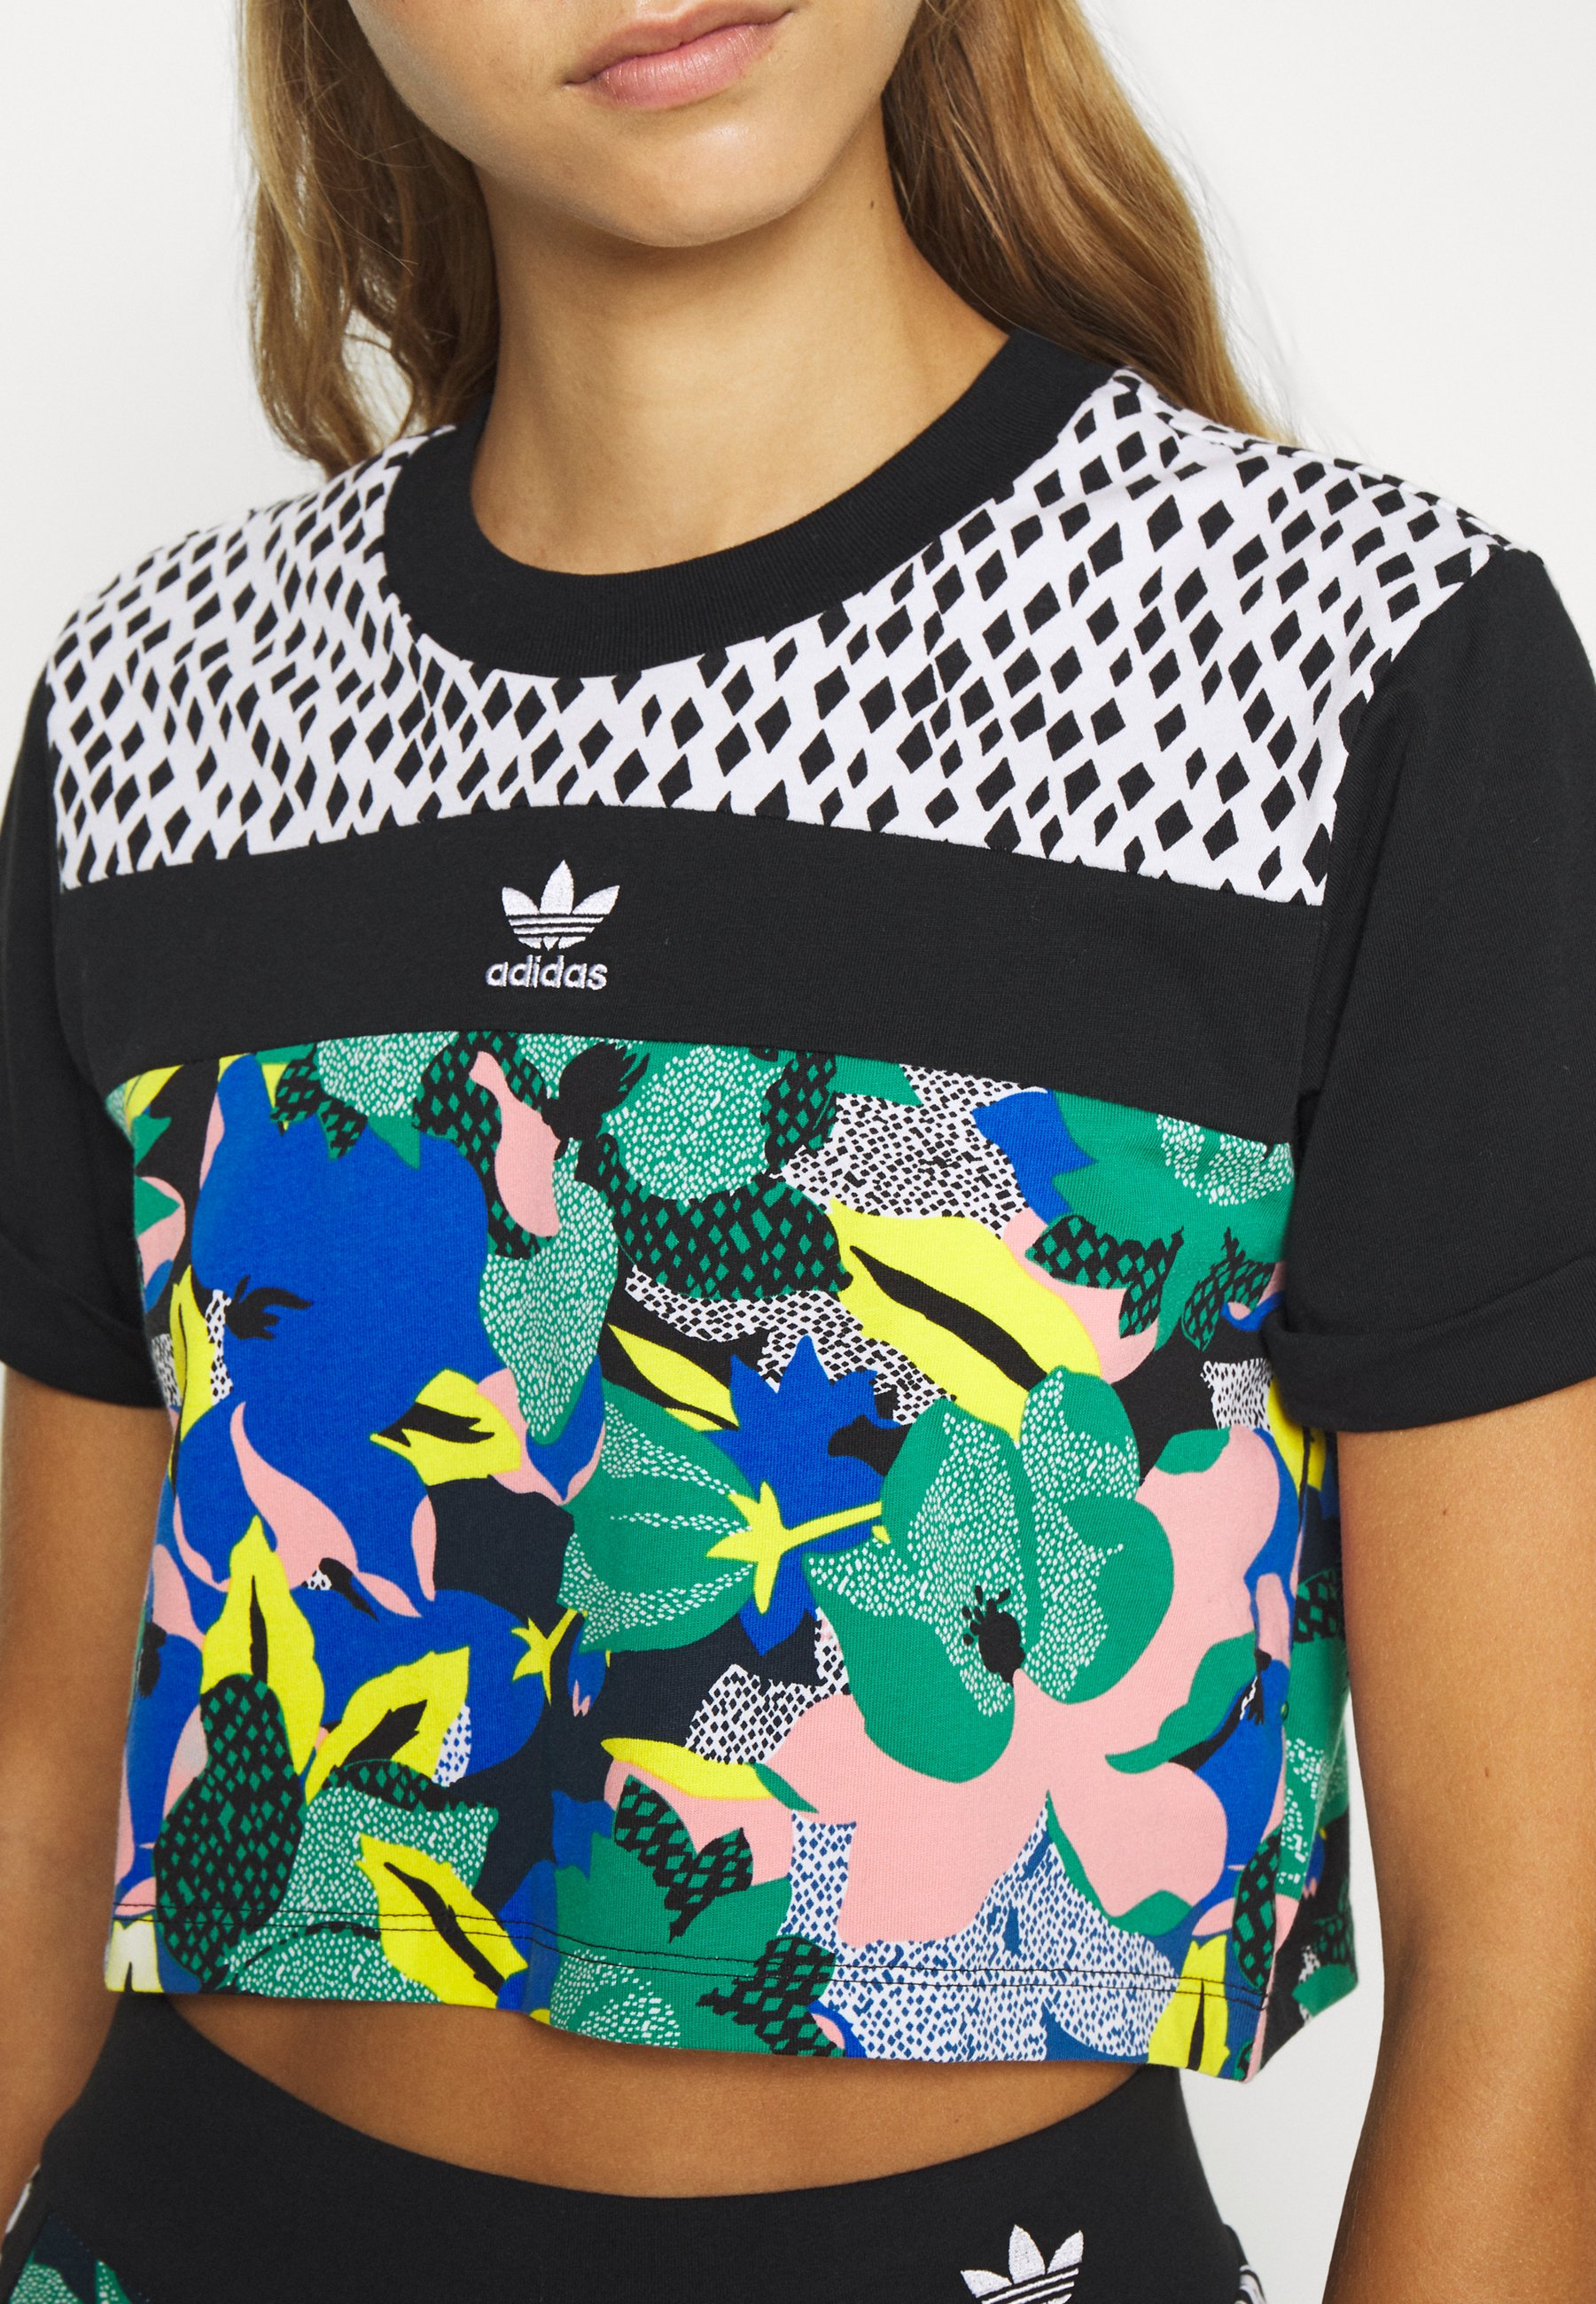 Adidas Originals Cropped Tee - T-shirts Med Print Multi Coloured/flerfarget